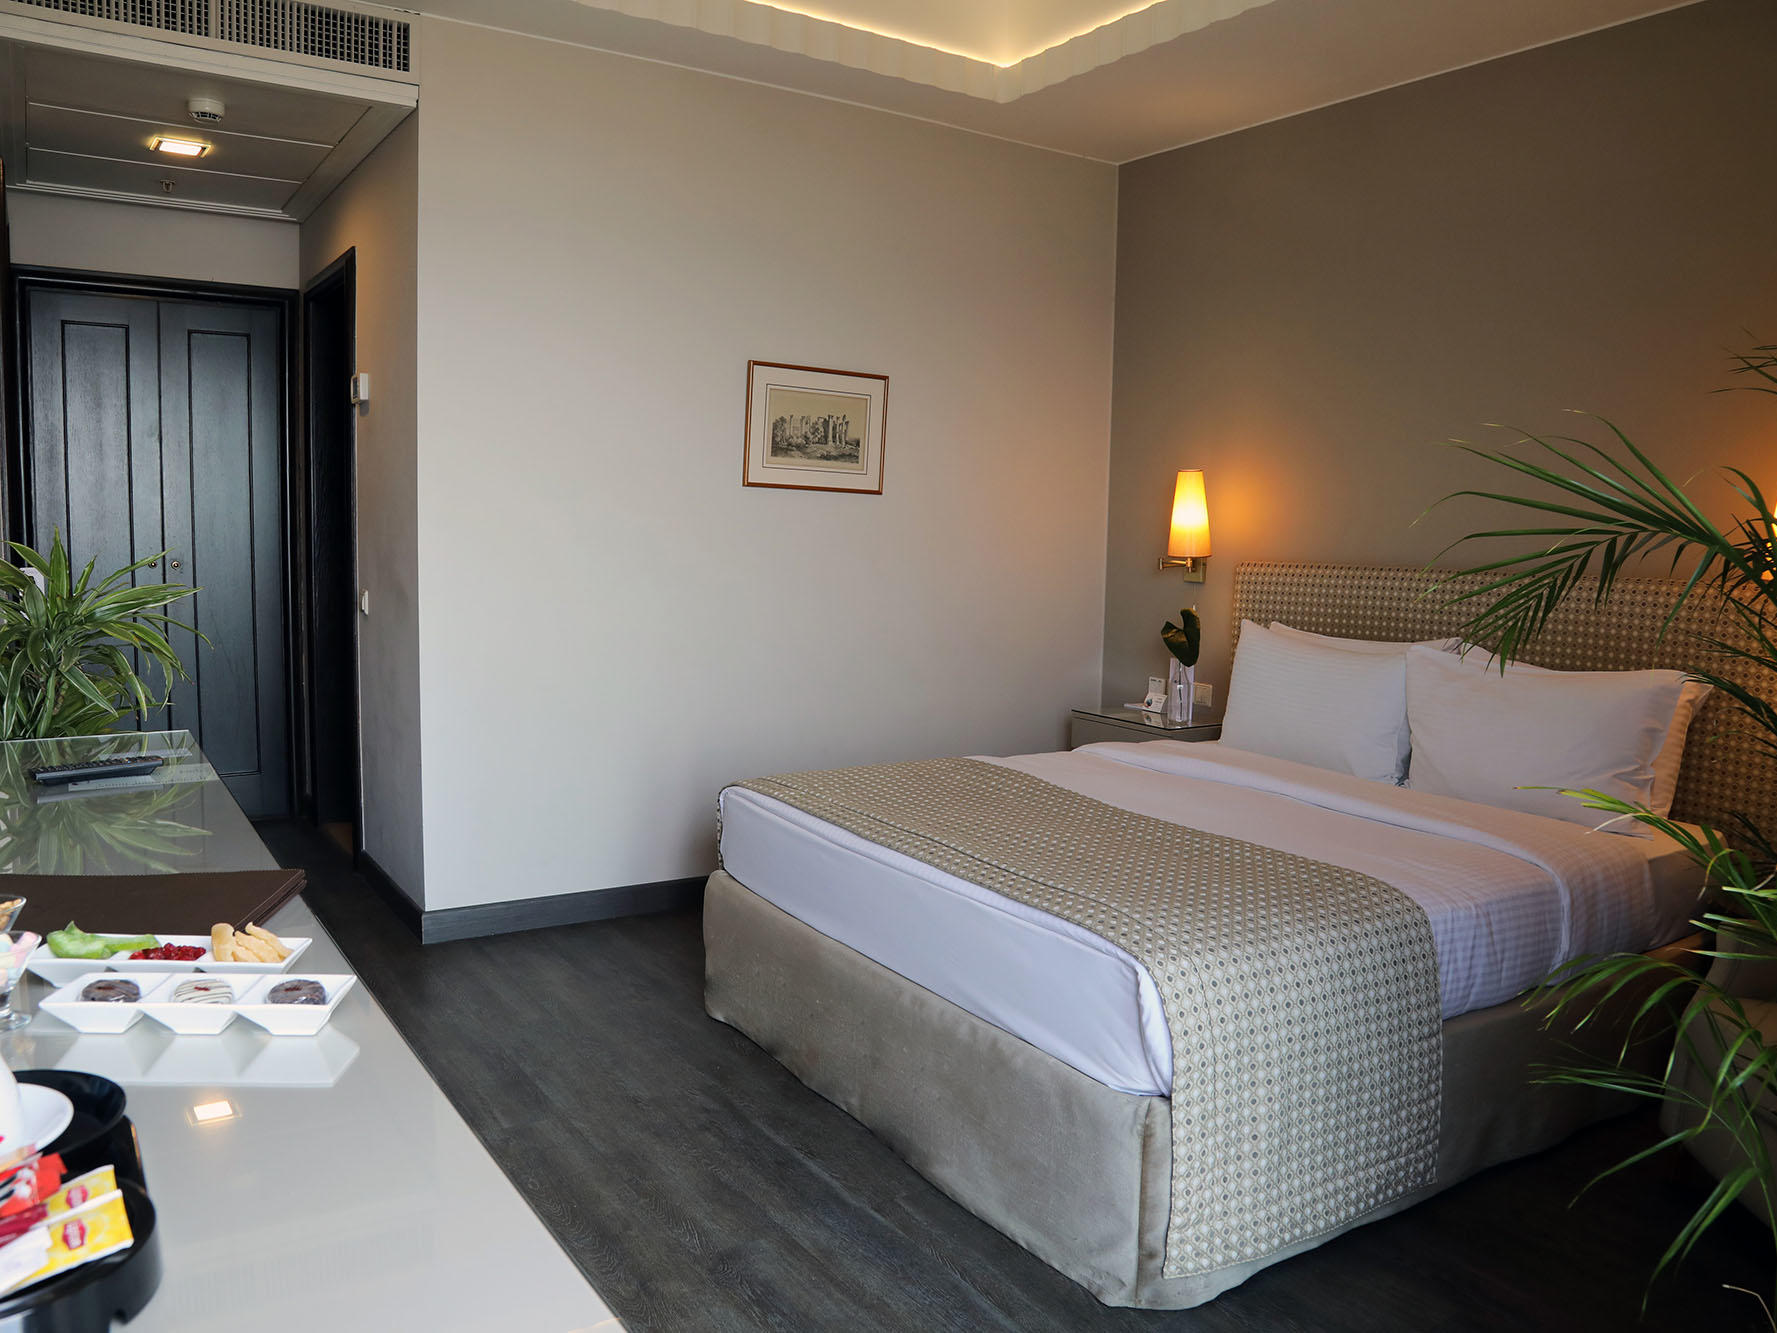 Premium Room with welcome amenity